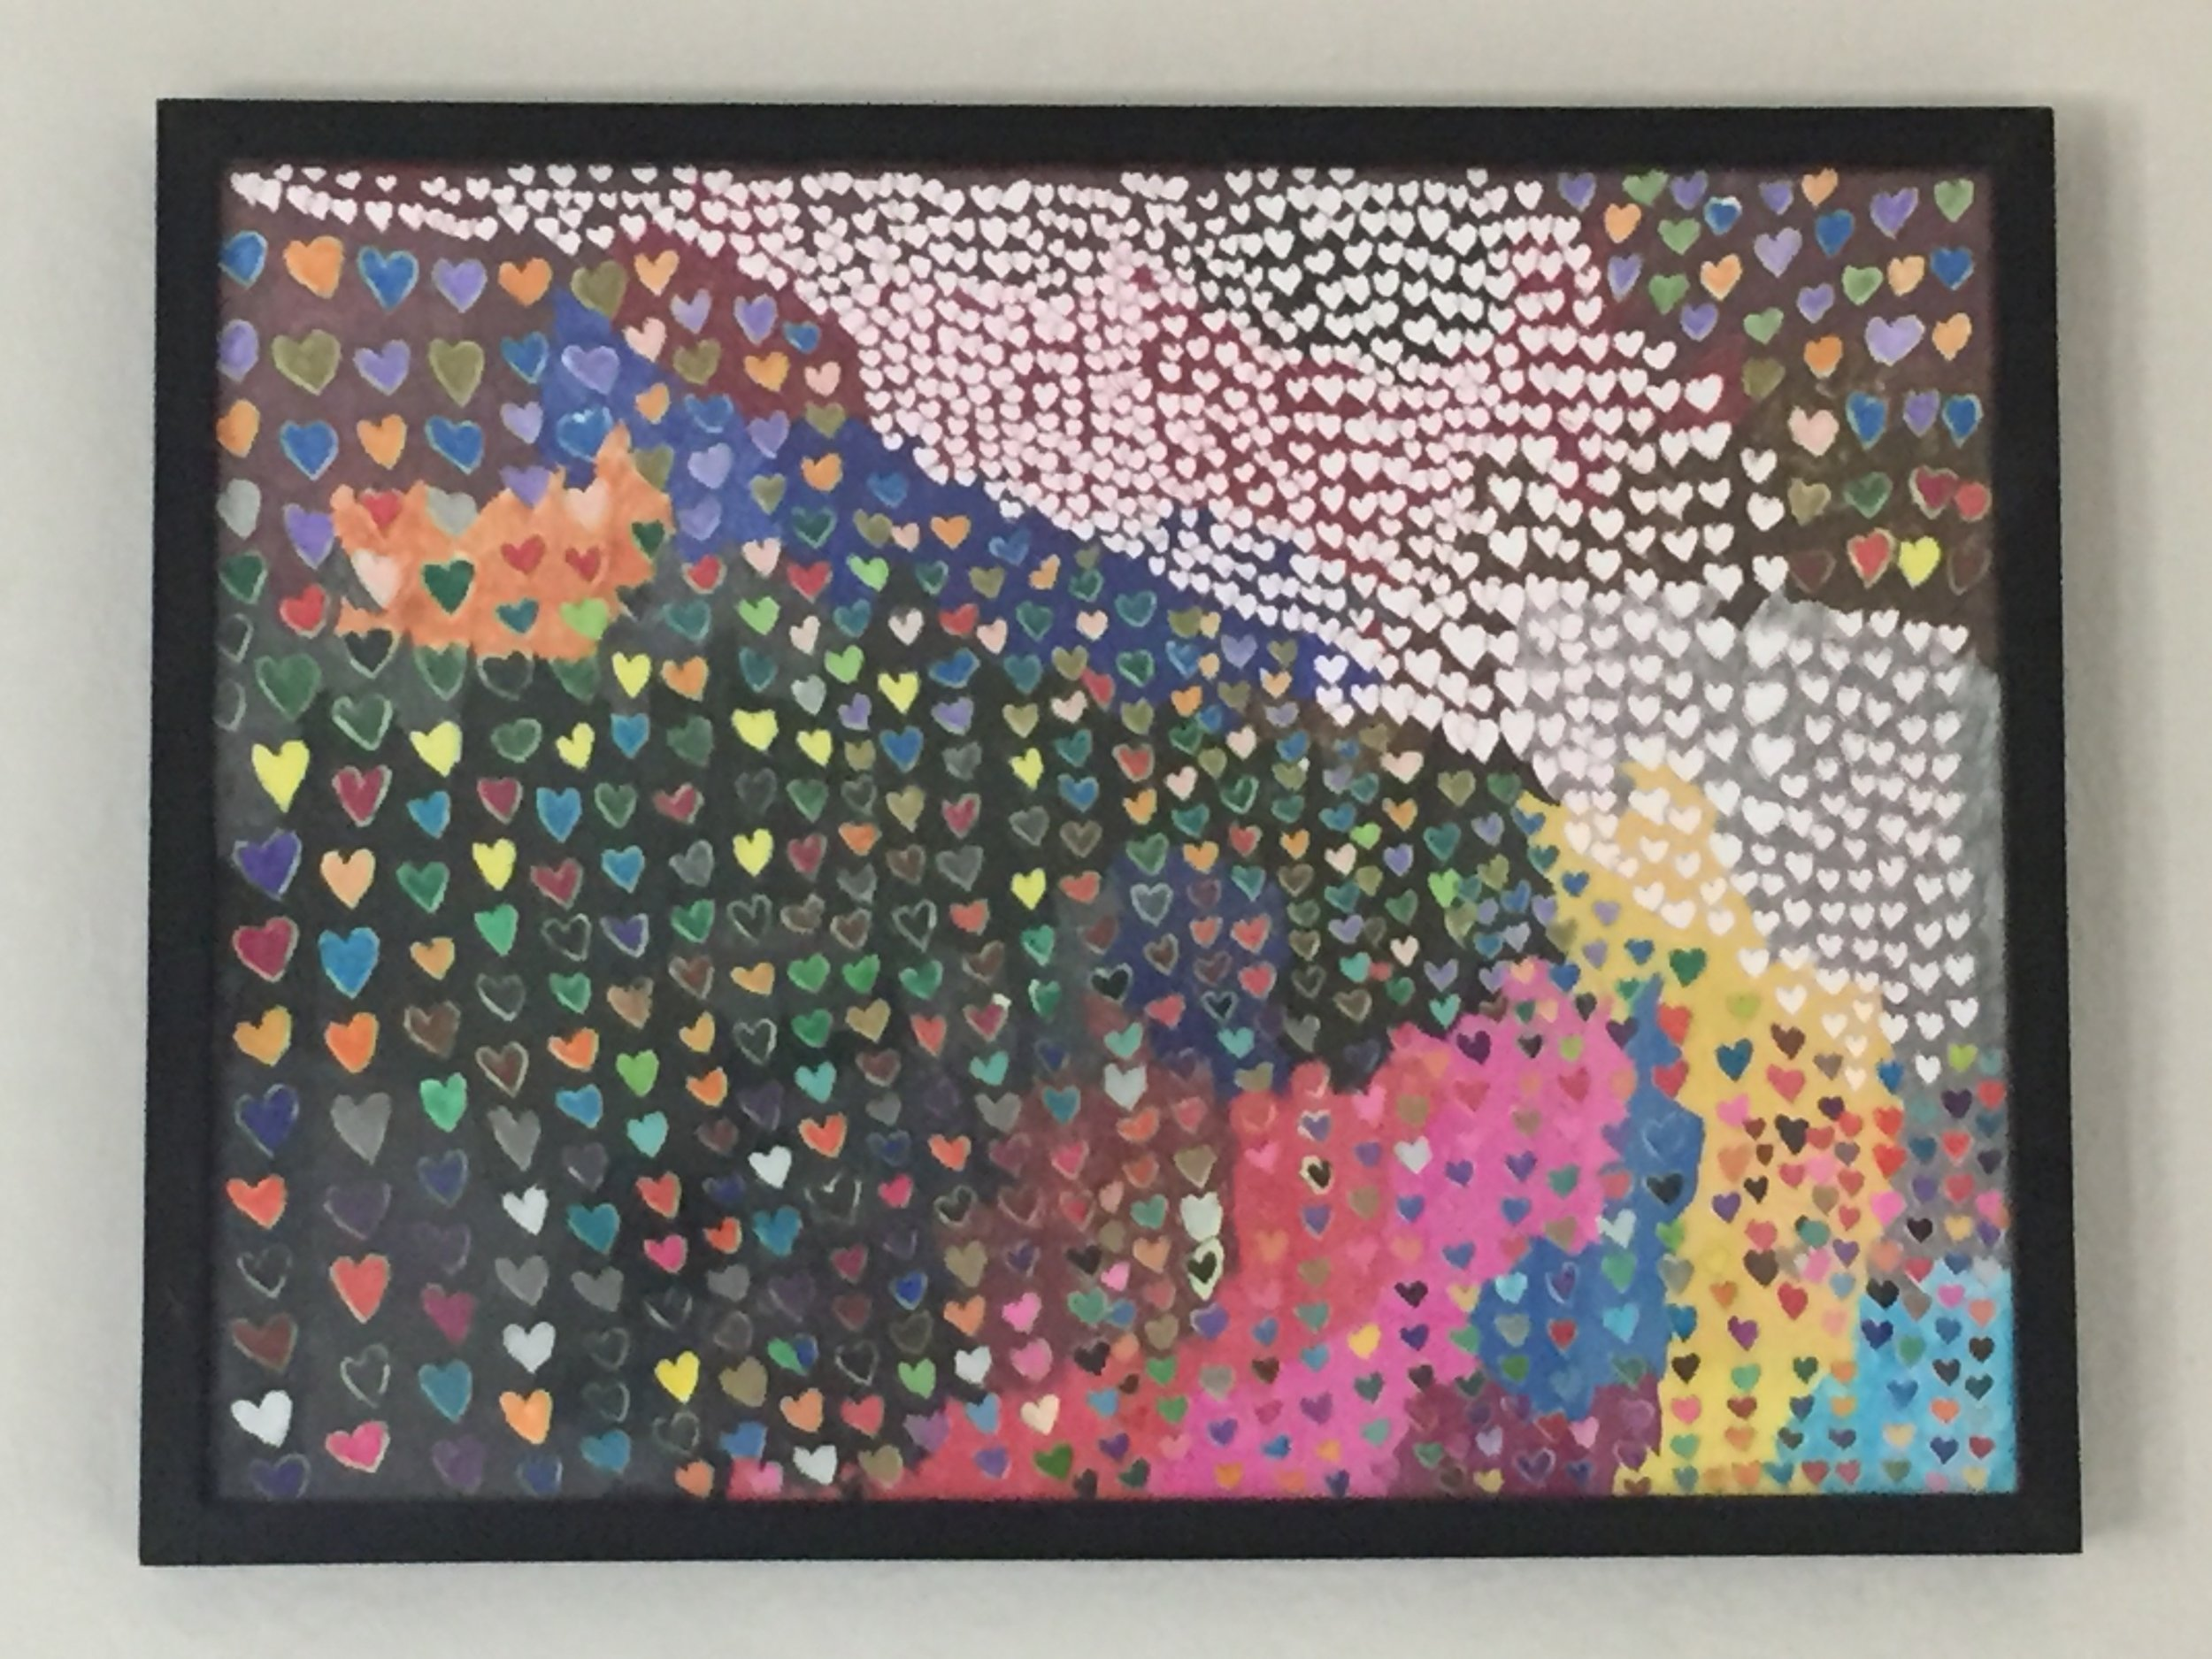 Lydia Thompson: Painting. RIVER OF HEARTS, which appeared on the Epilepsy & Behavior Journal in 2017. Her painting was used as a background for several pages of my website.